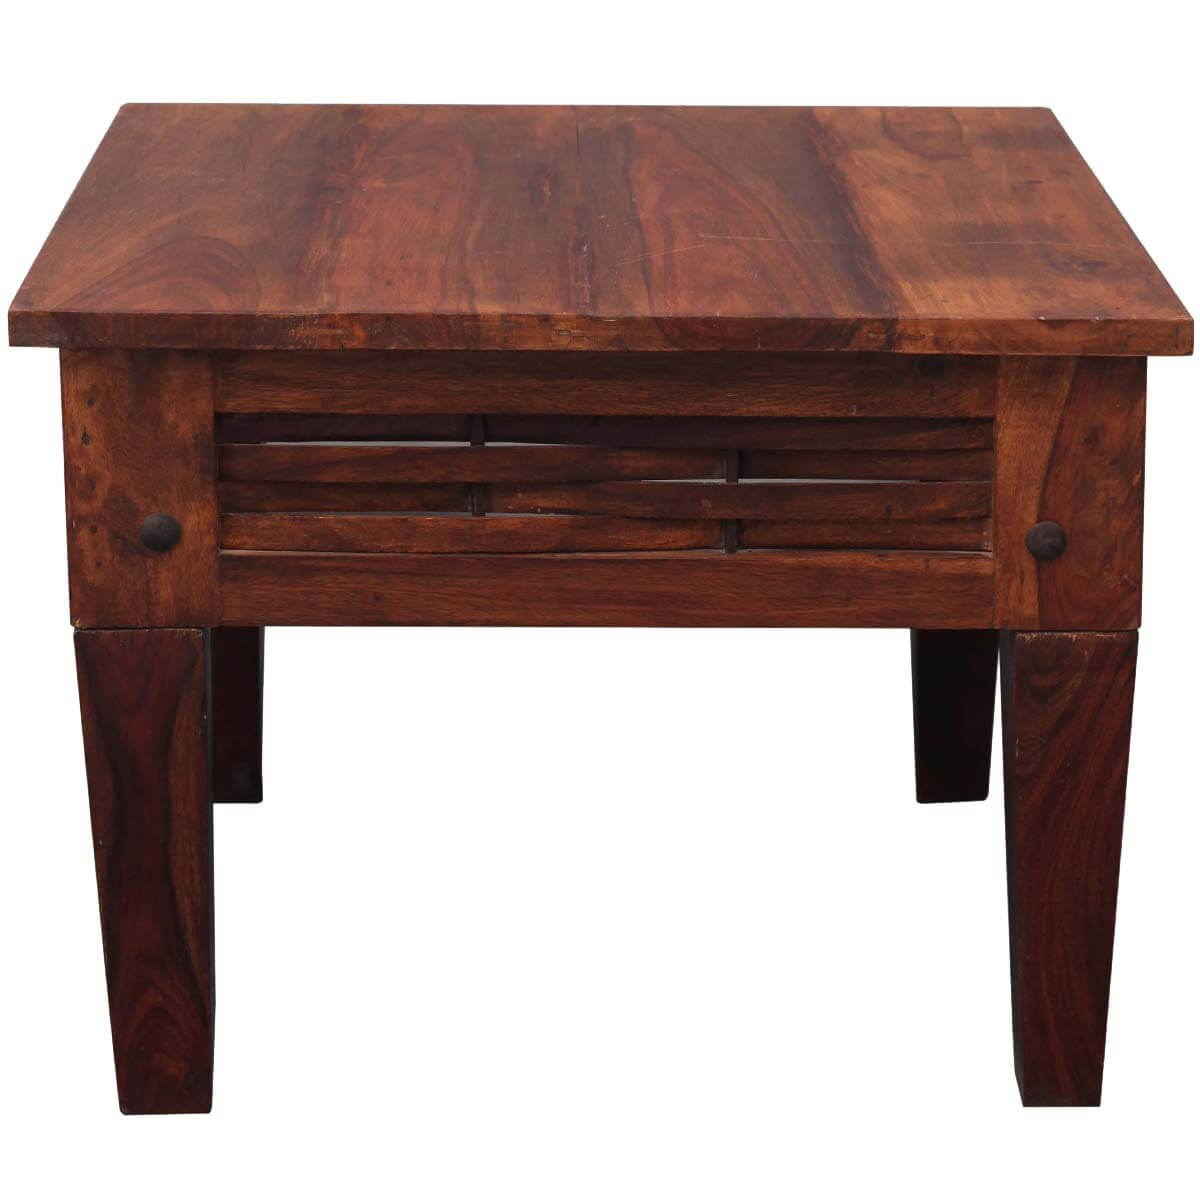 Small woven rustic side table in solid wood for Small wooden side table